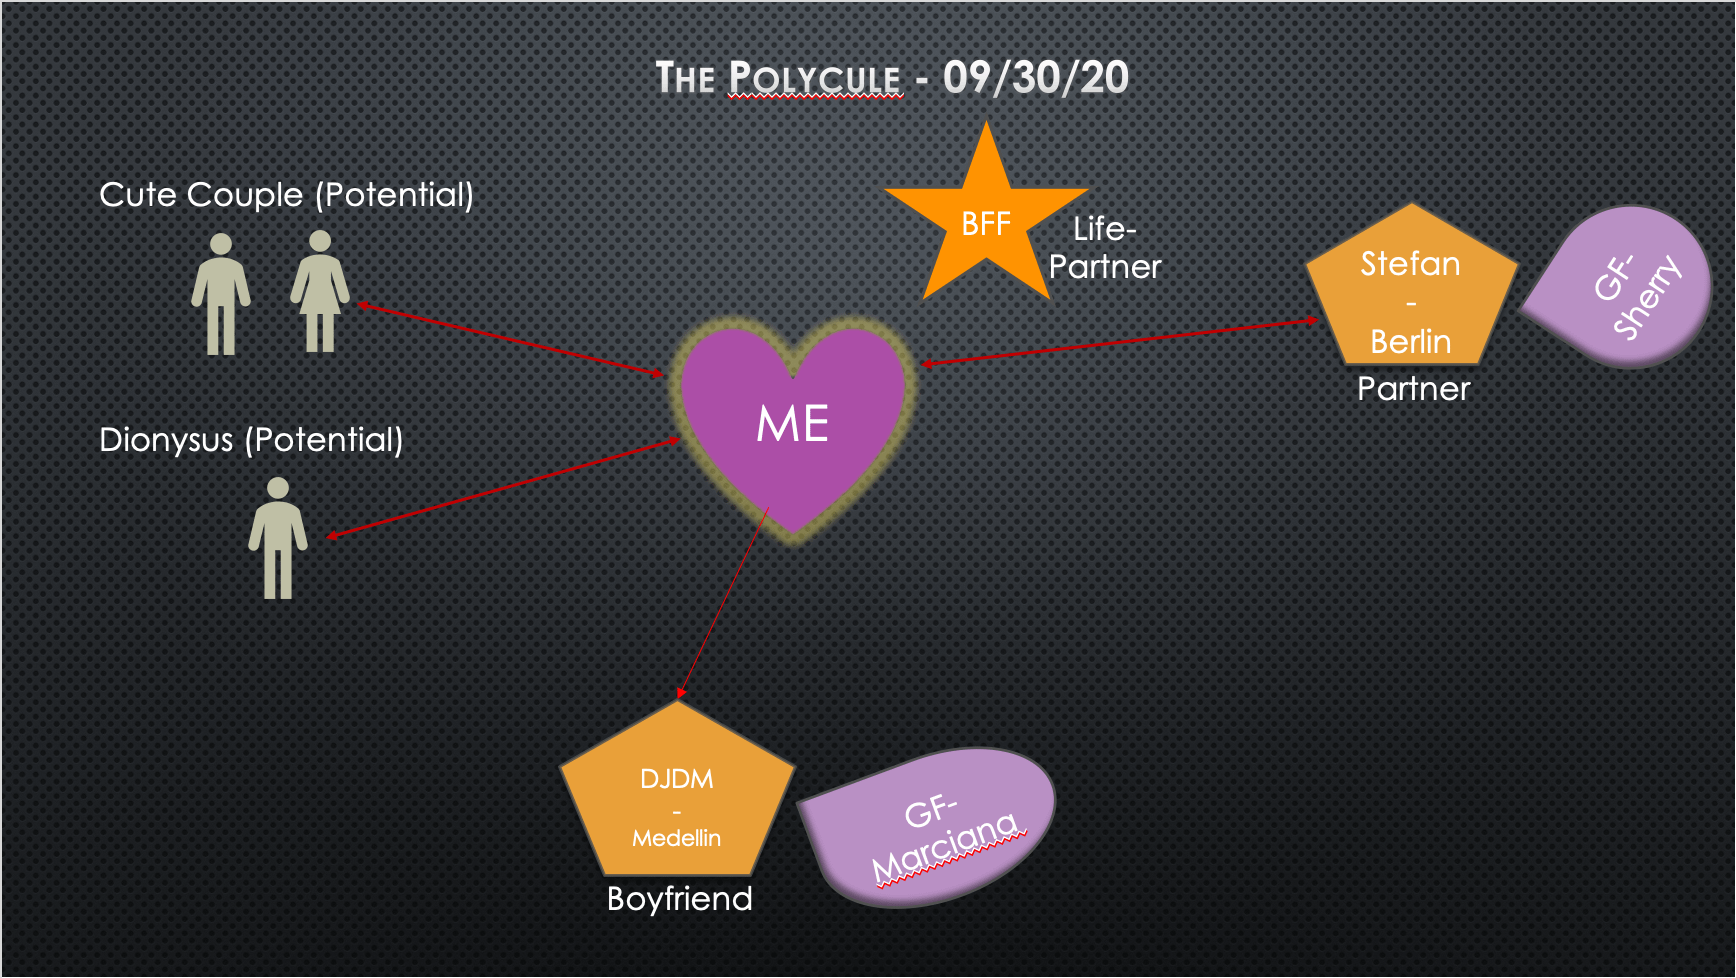 Graphic of the polycule in PPT